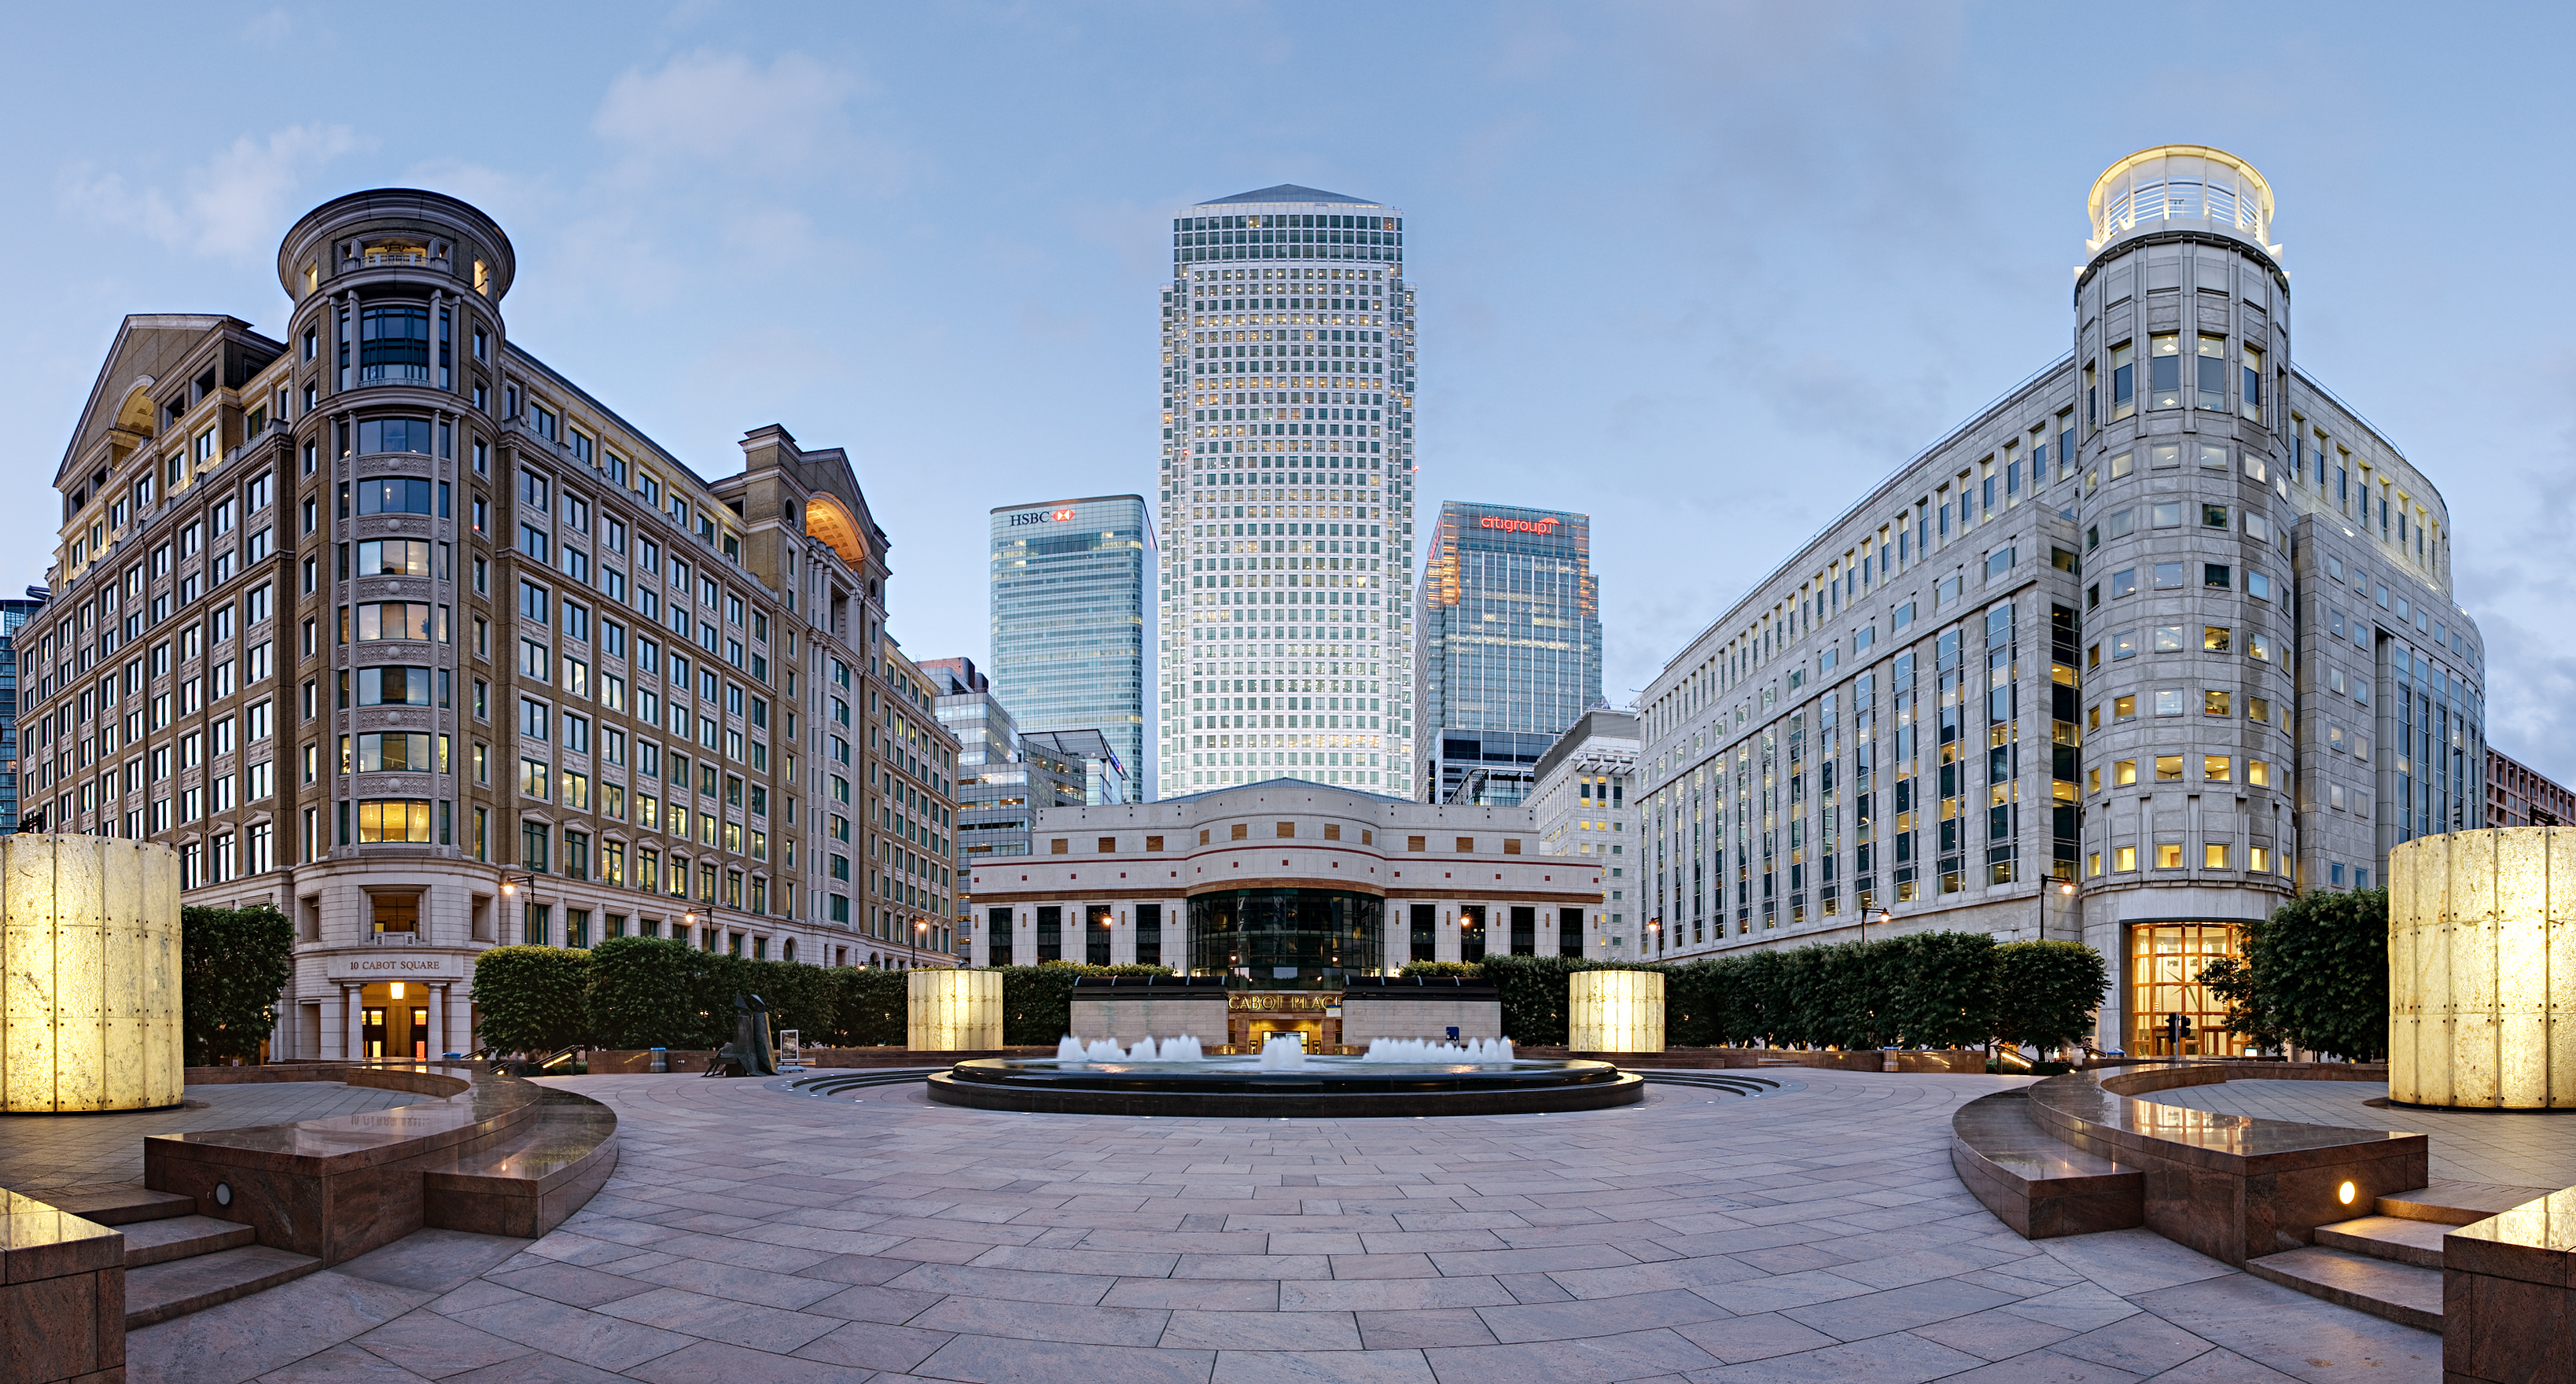 cabot_square_canary_wharf_-_june_2008